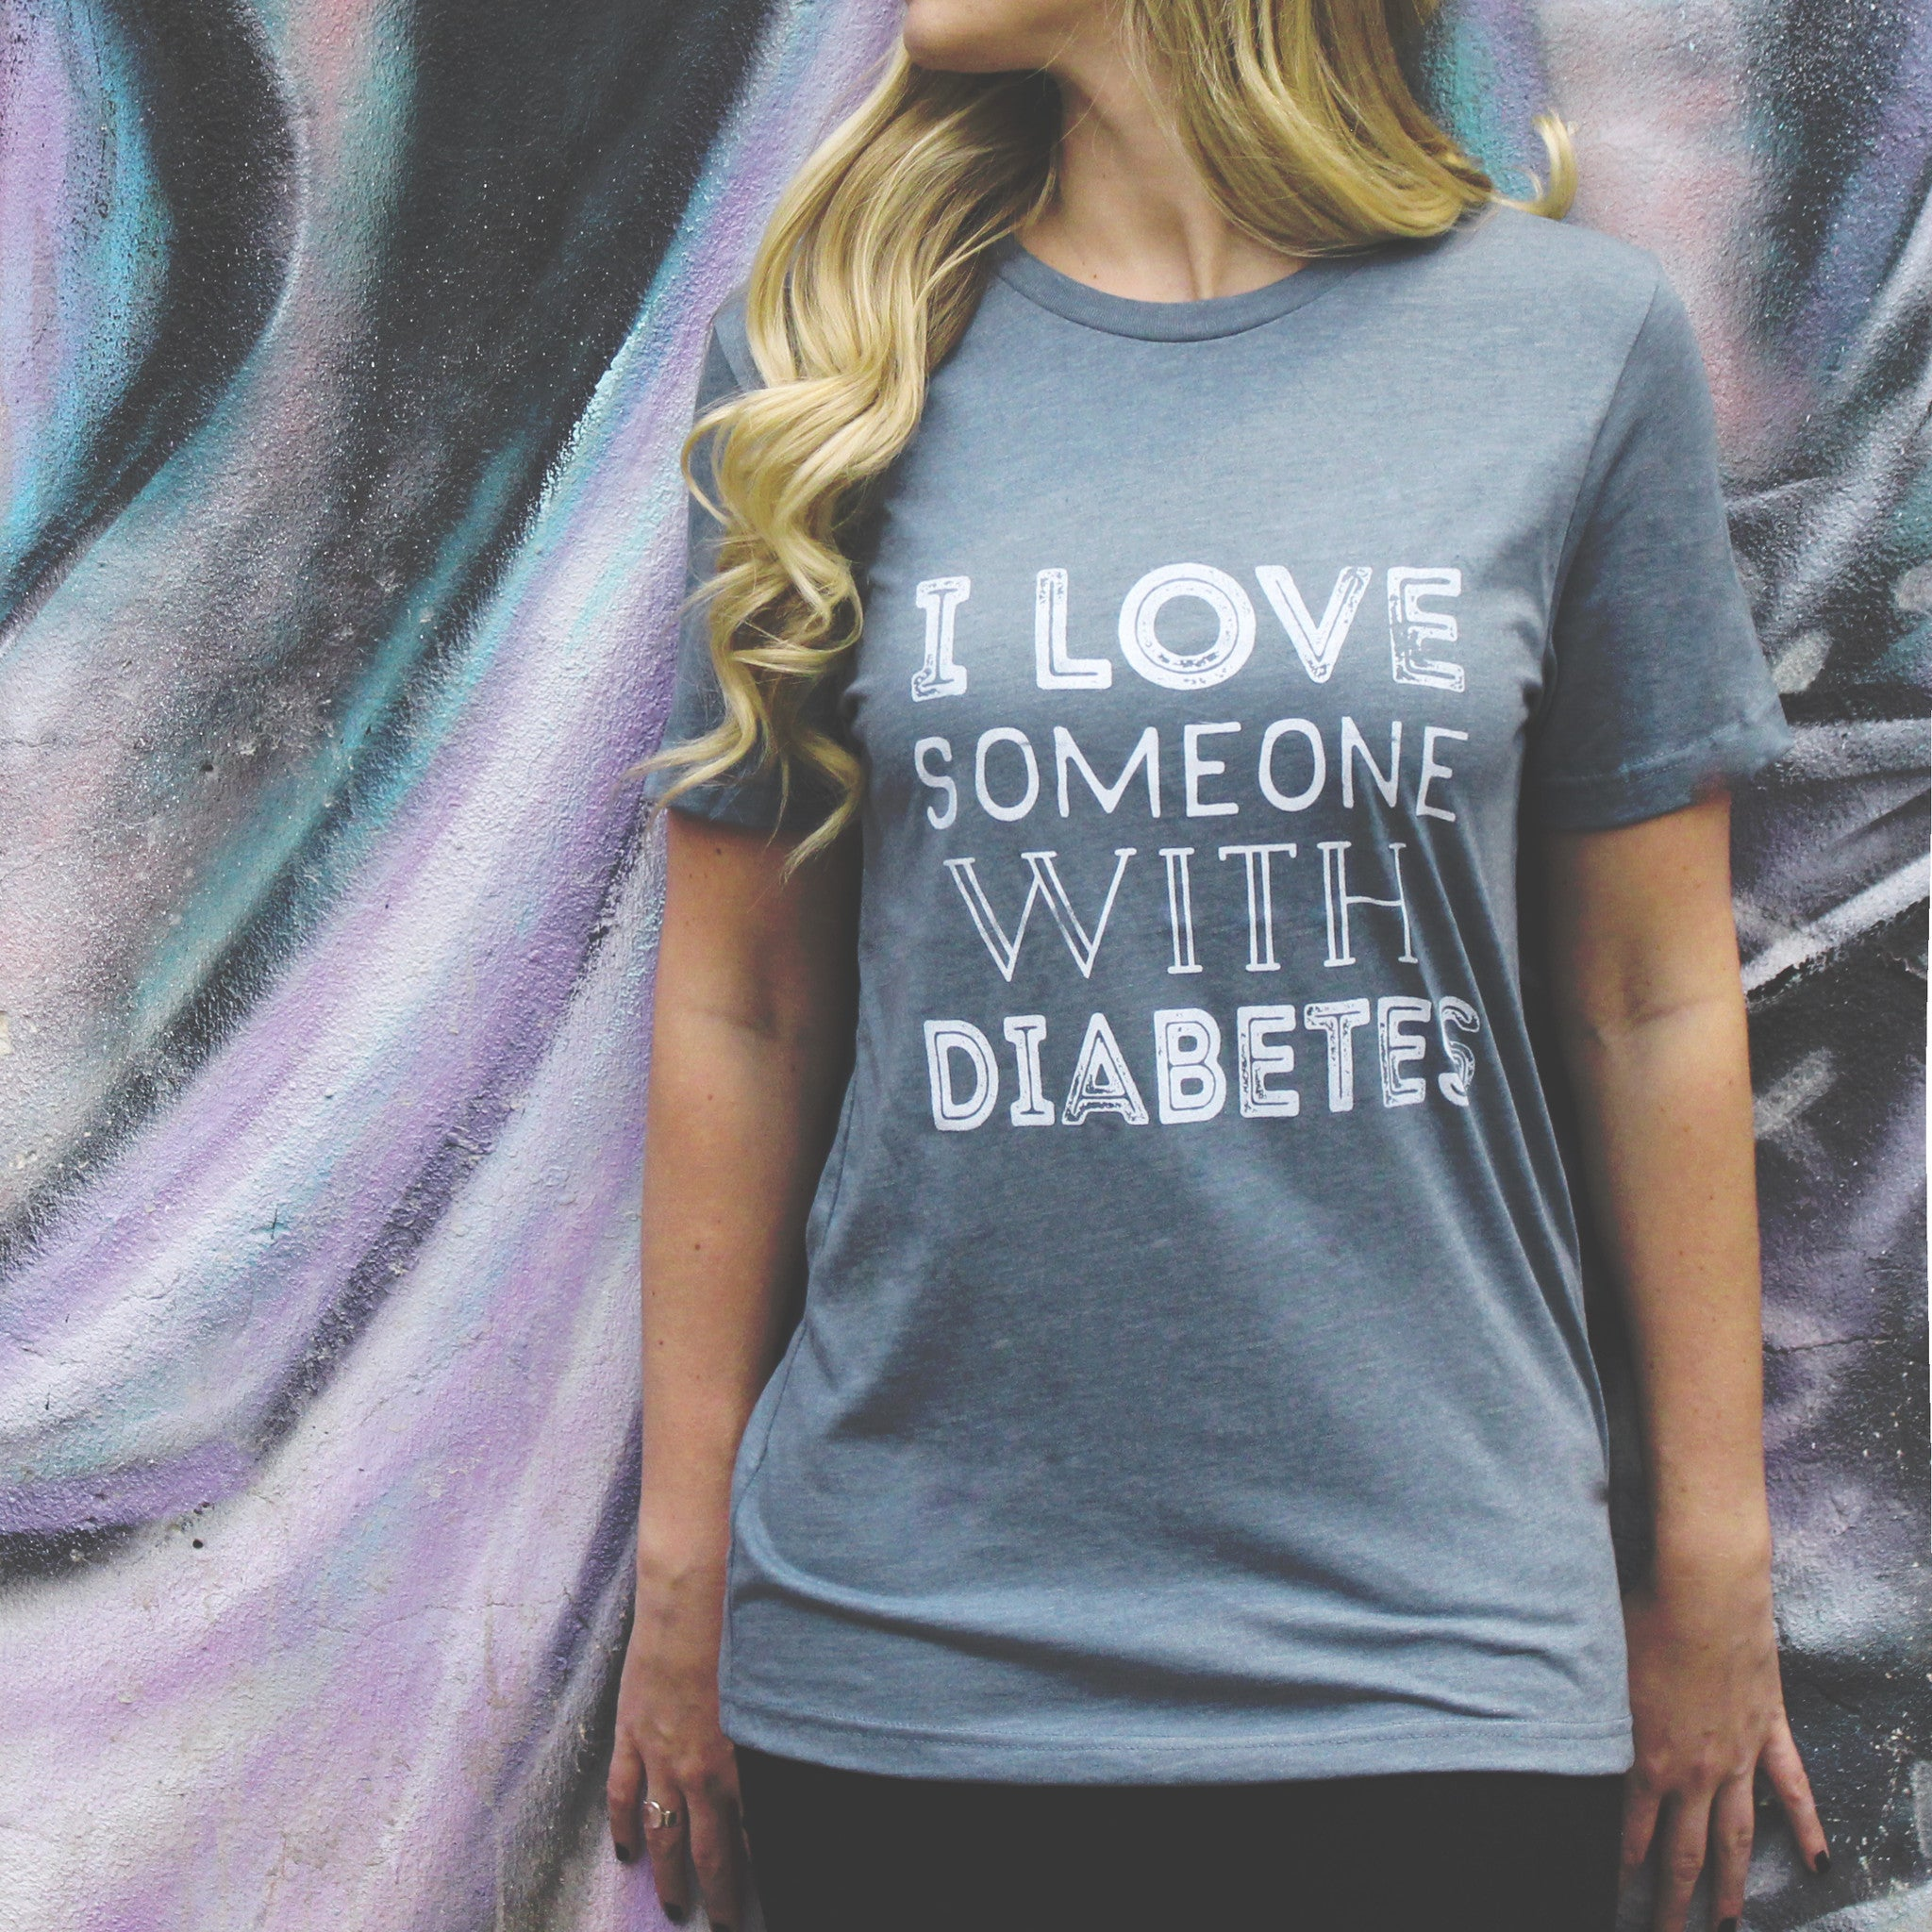 'I Love Someone with Diabetes' Blue Unisex Tee - Sugar Linings Swag - Diabetes Shirts and Clothing